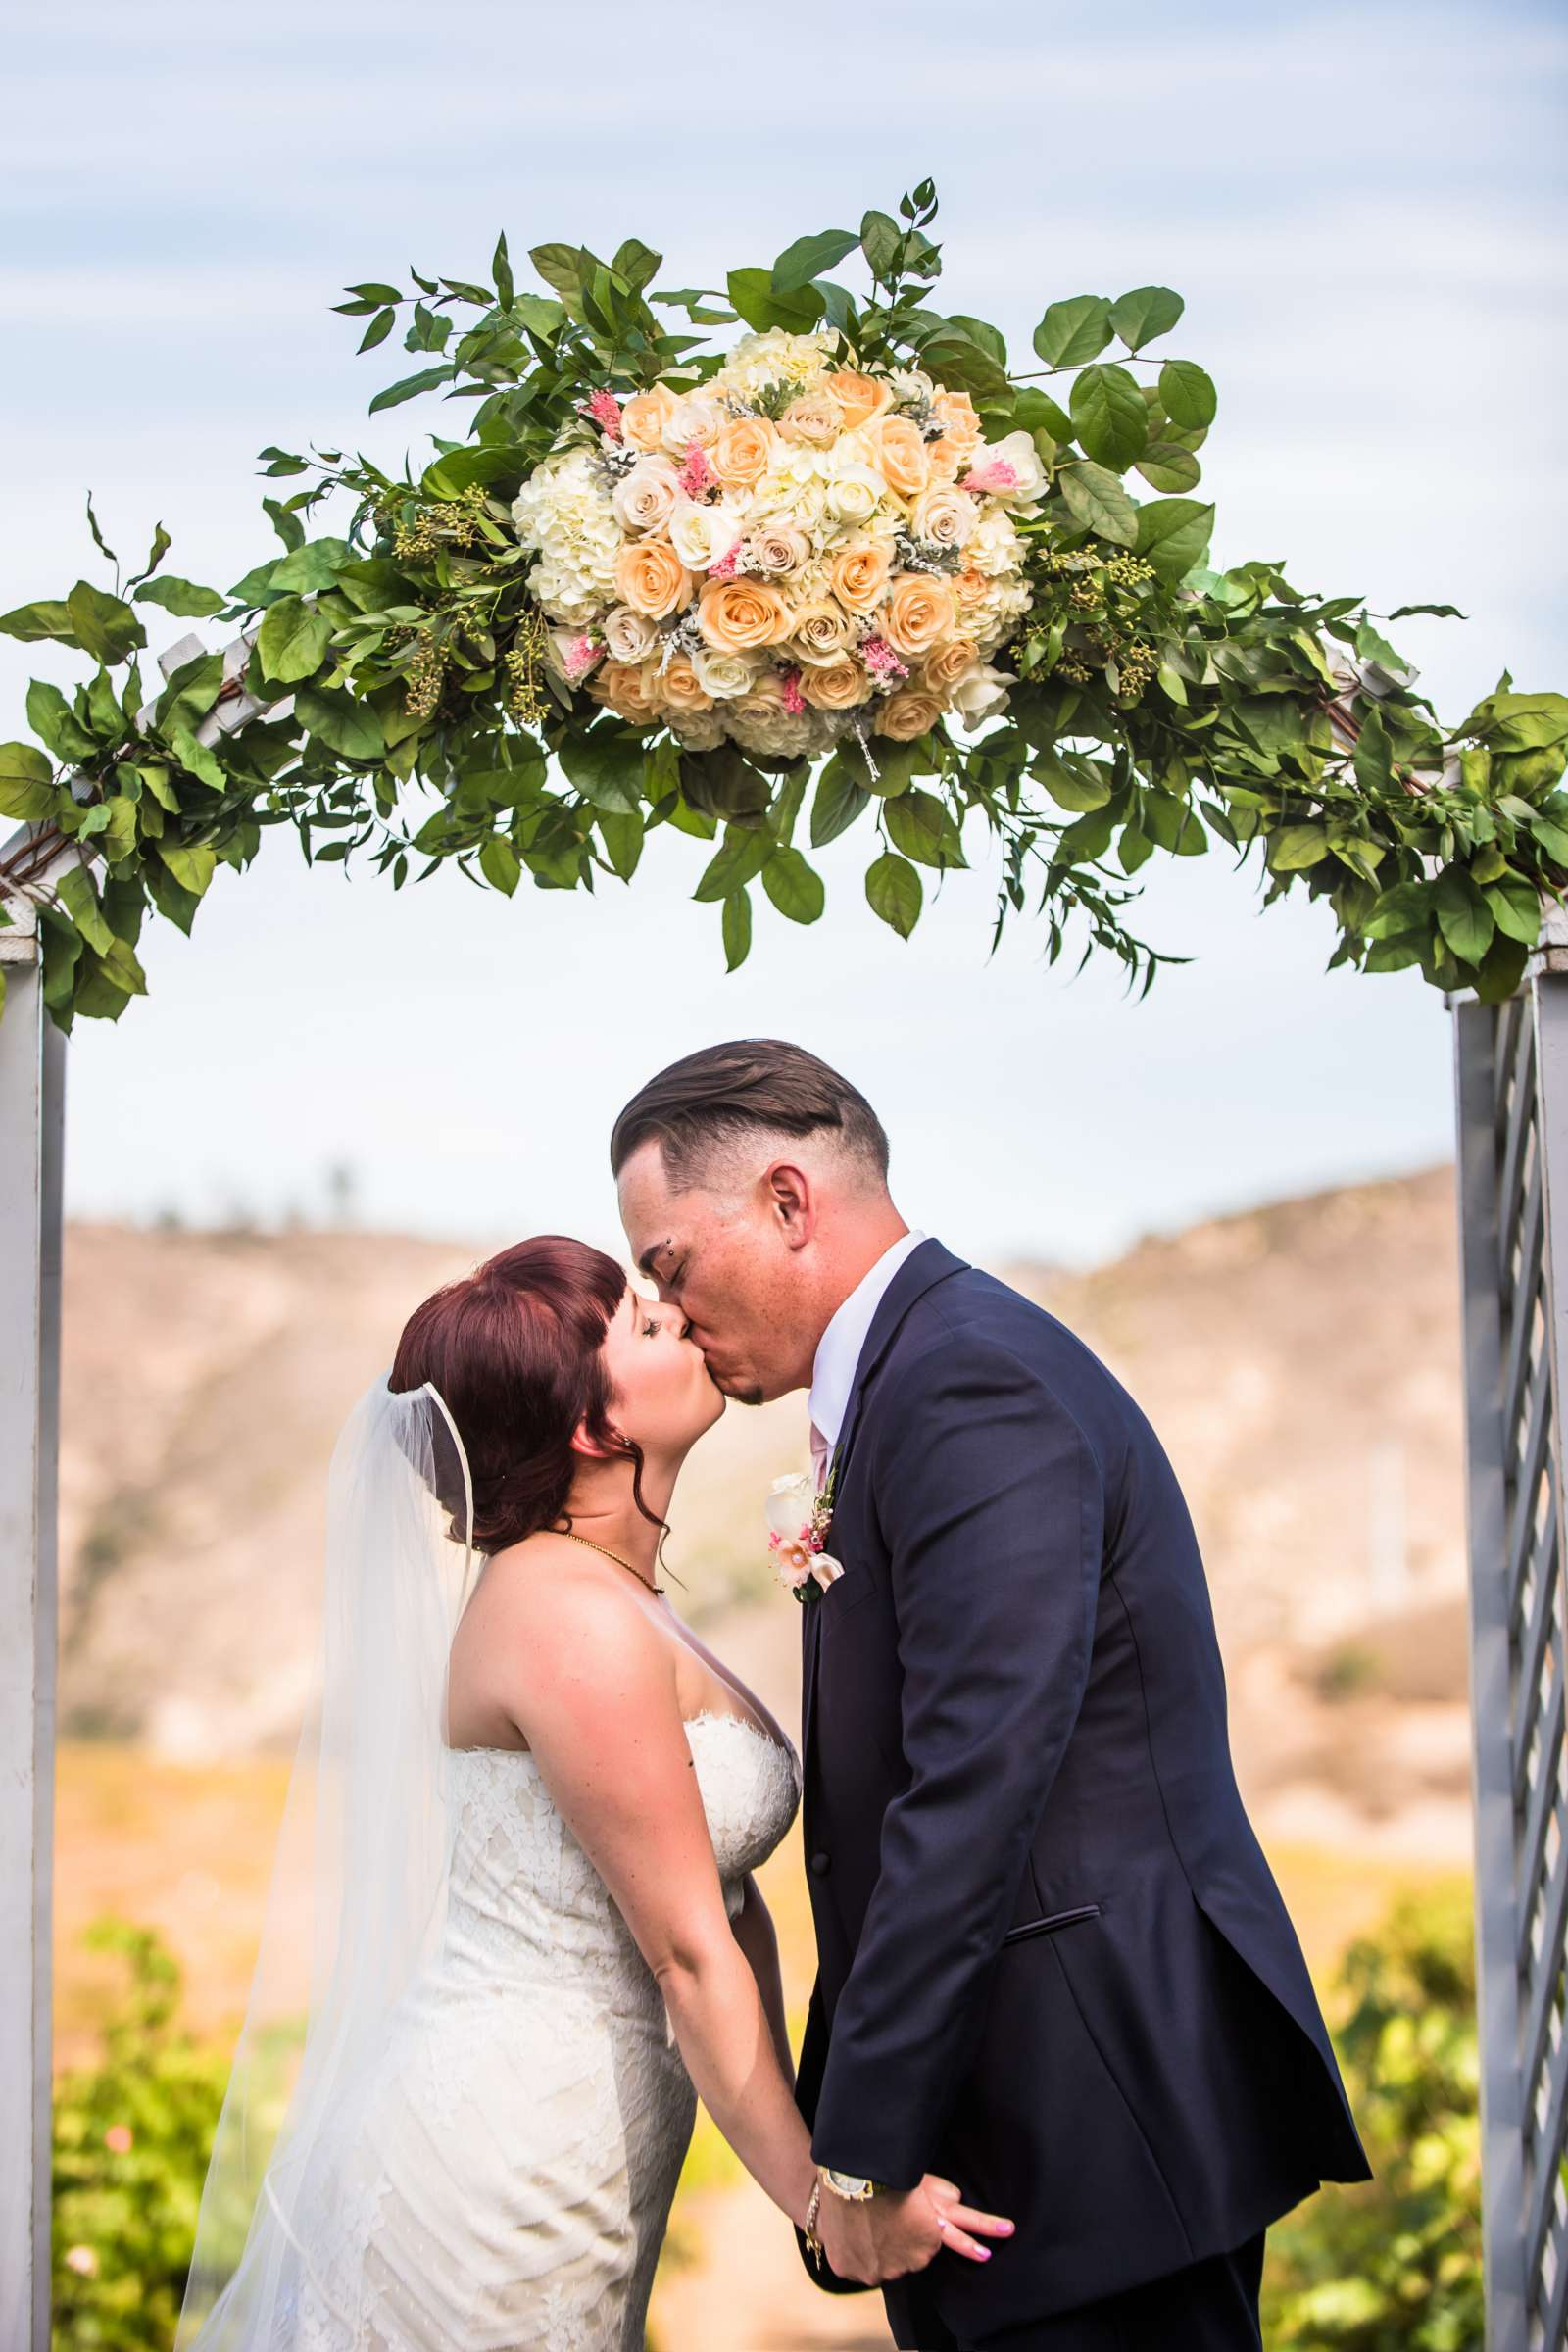 Orfila Vineyards Wedding, Tulasi and Richard Wedding Photo #30 by True Photography